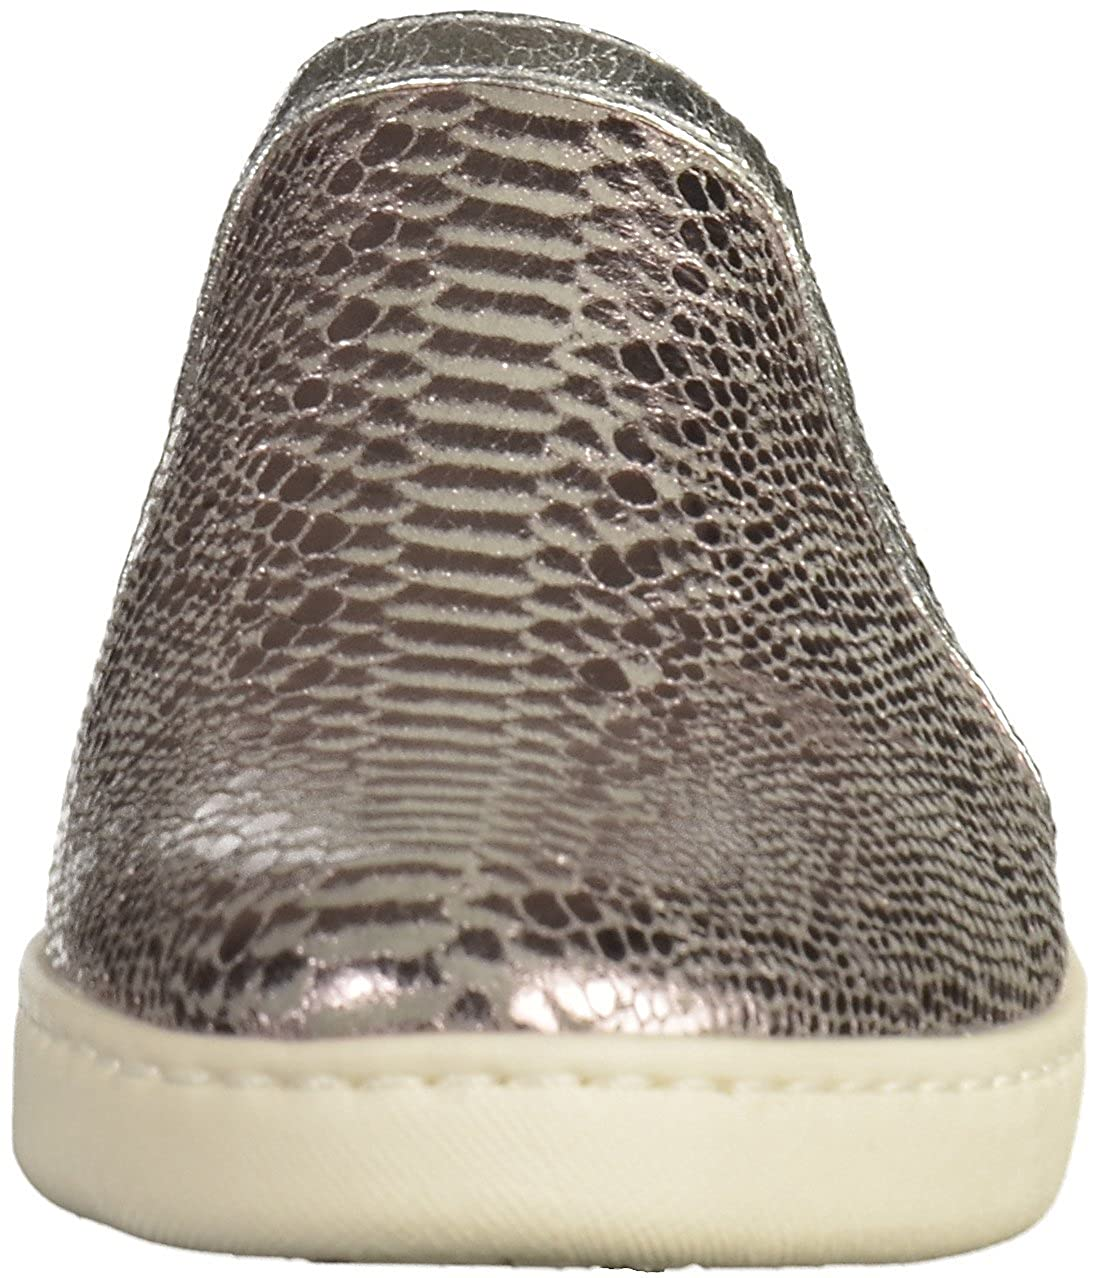 Tamaris Slipper Damen Slipper Tamaris Silber/Rosé Silber 11842f